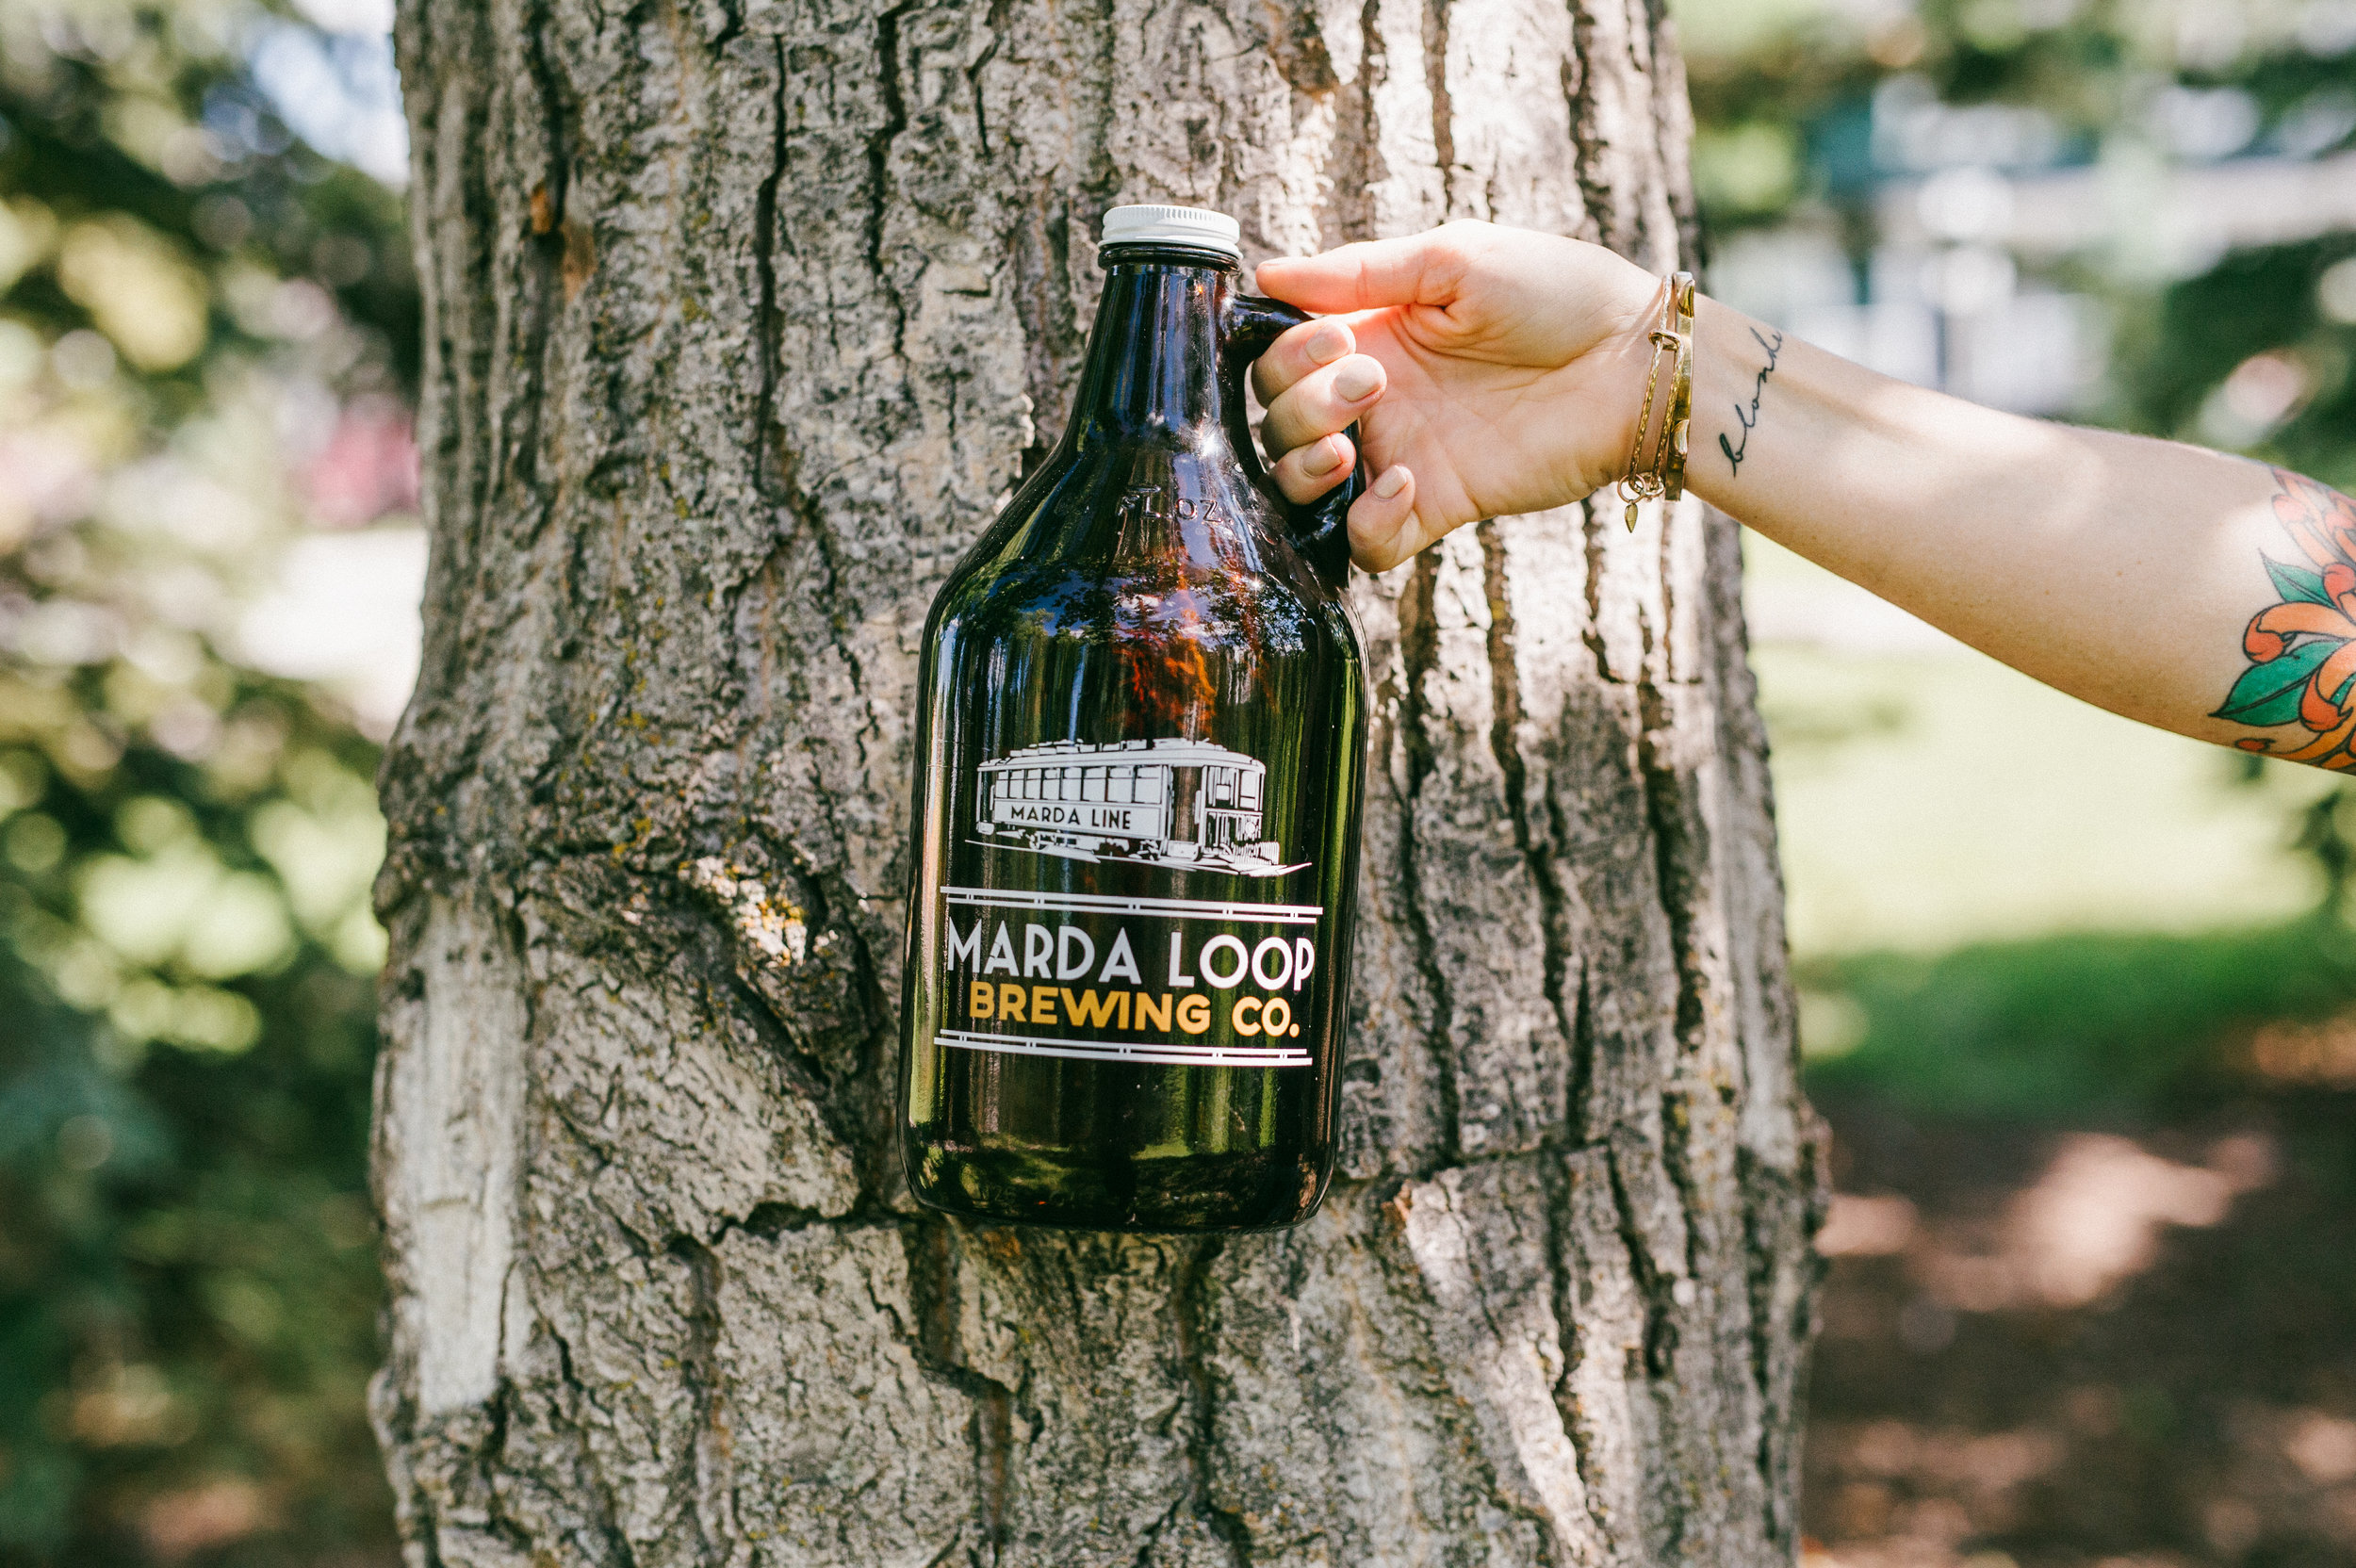 At Marda Loop Brewing, we believe in putting people and community first. We support a better quality of life for others in the following ways: -